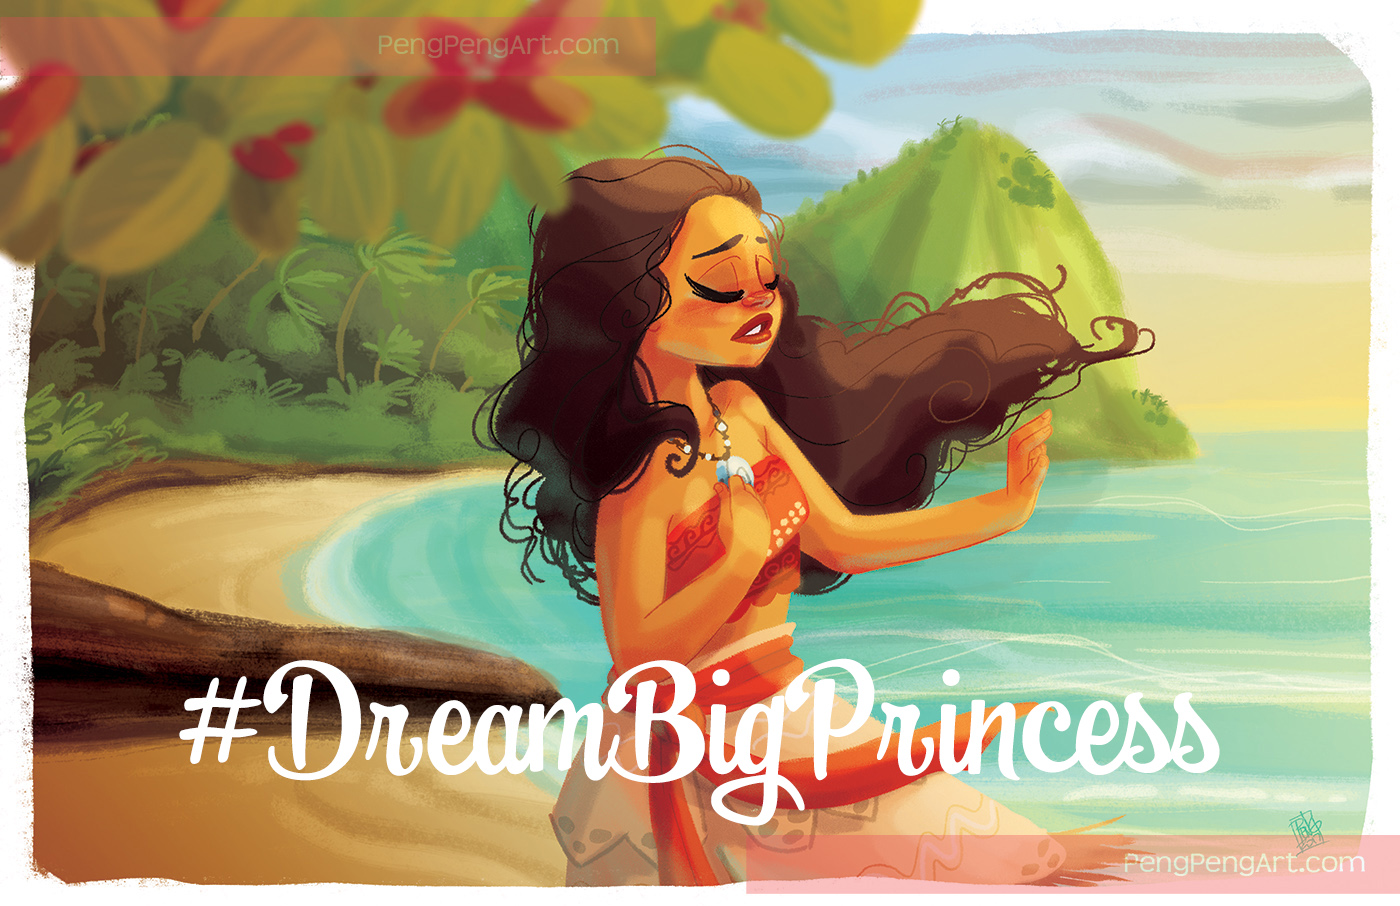 Peng peng art dream big princess dream big princess malvernweather Images